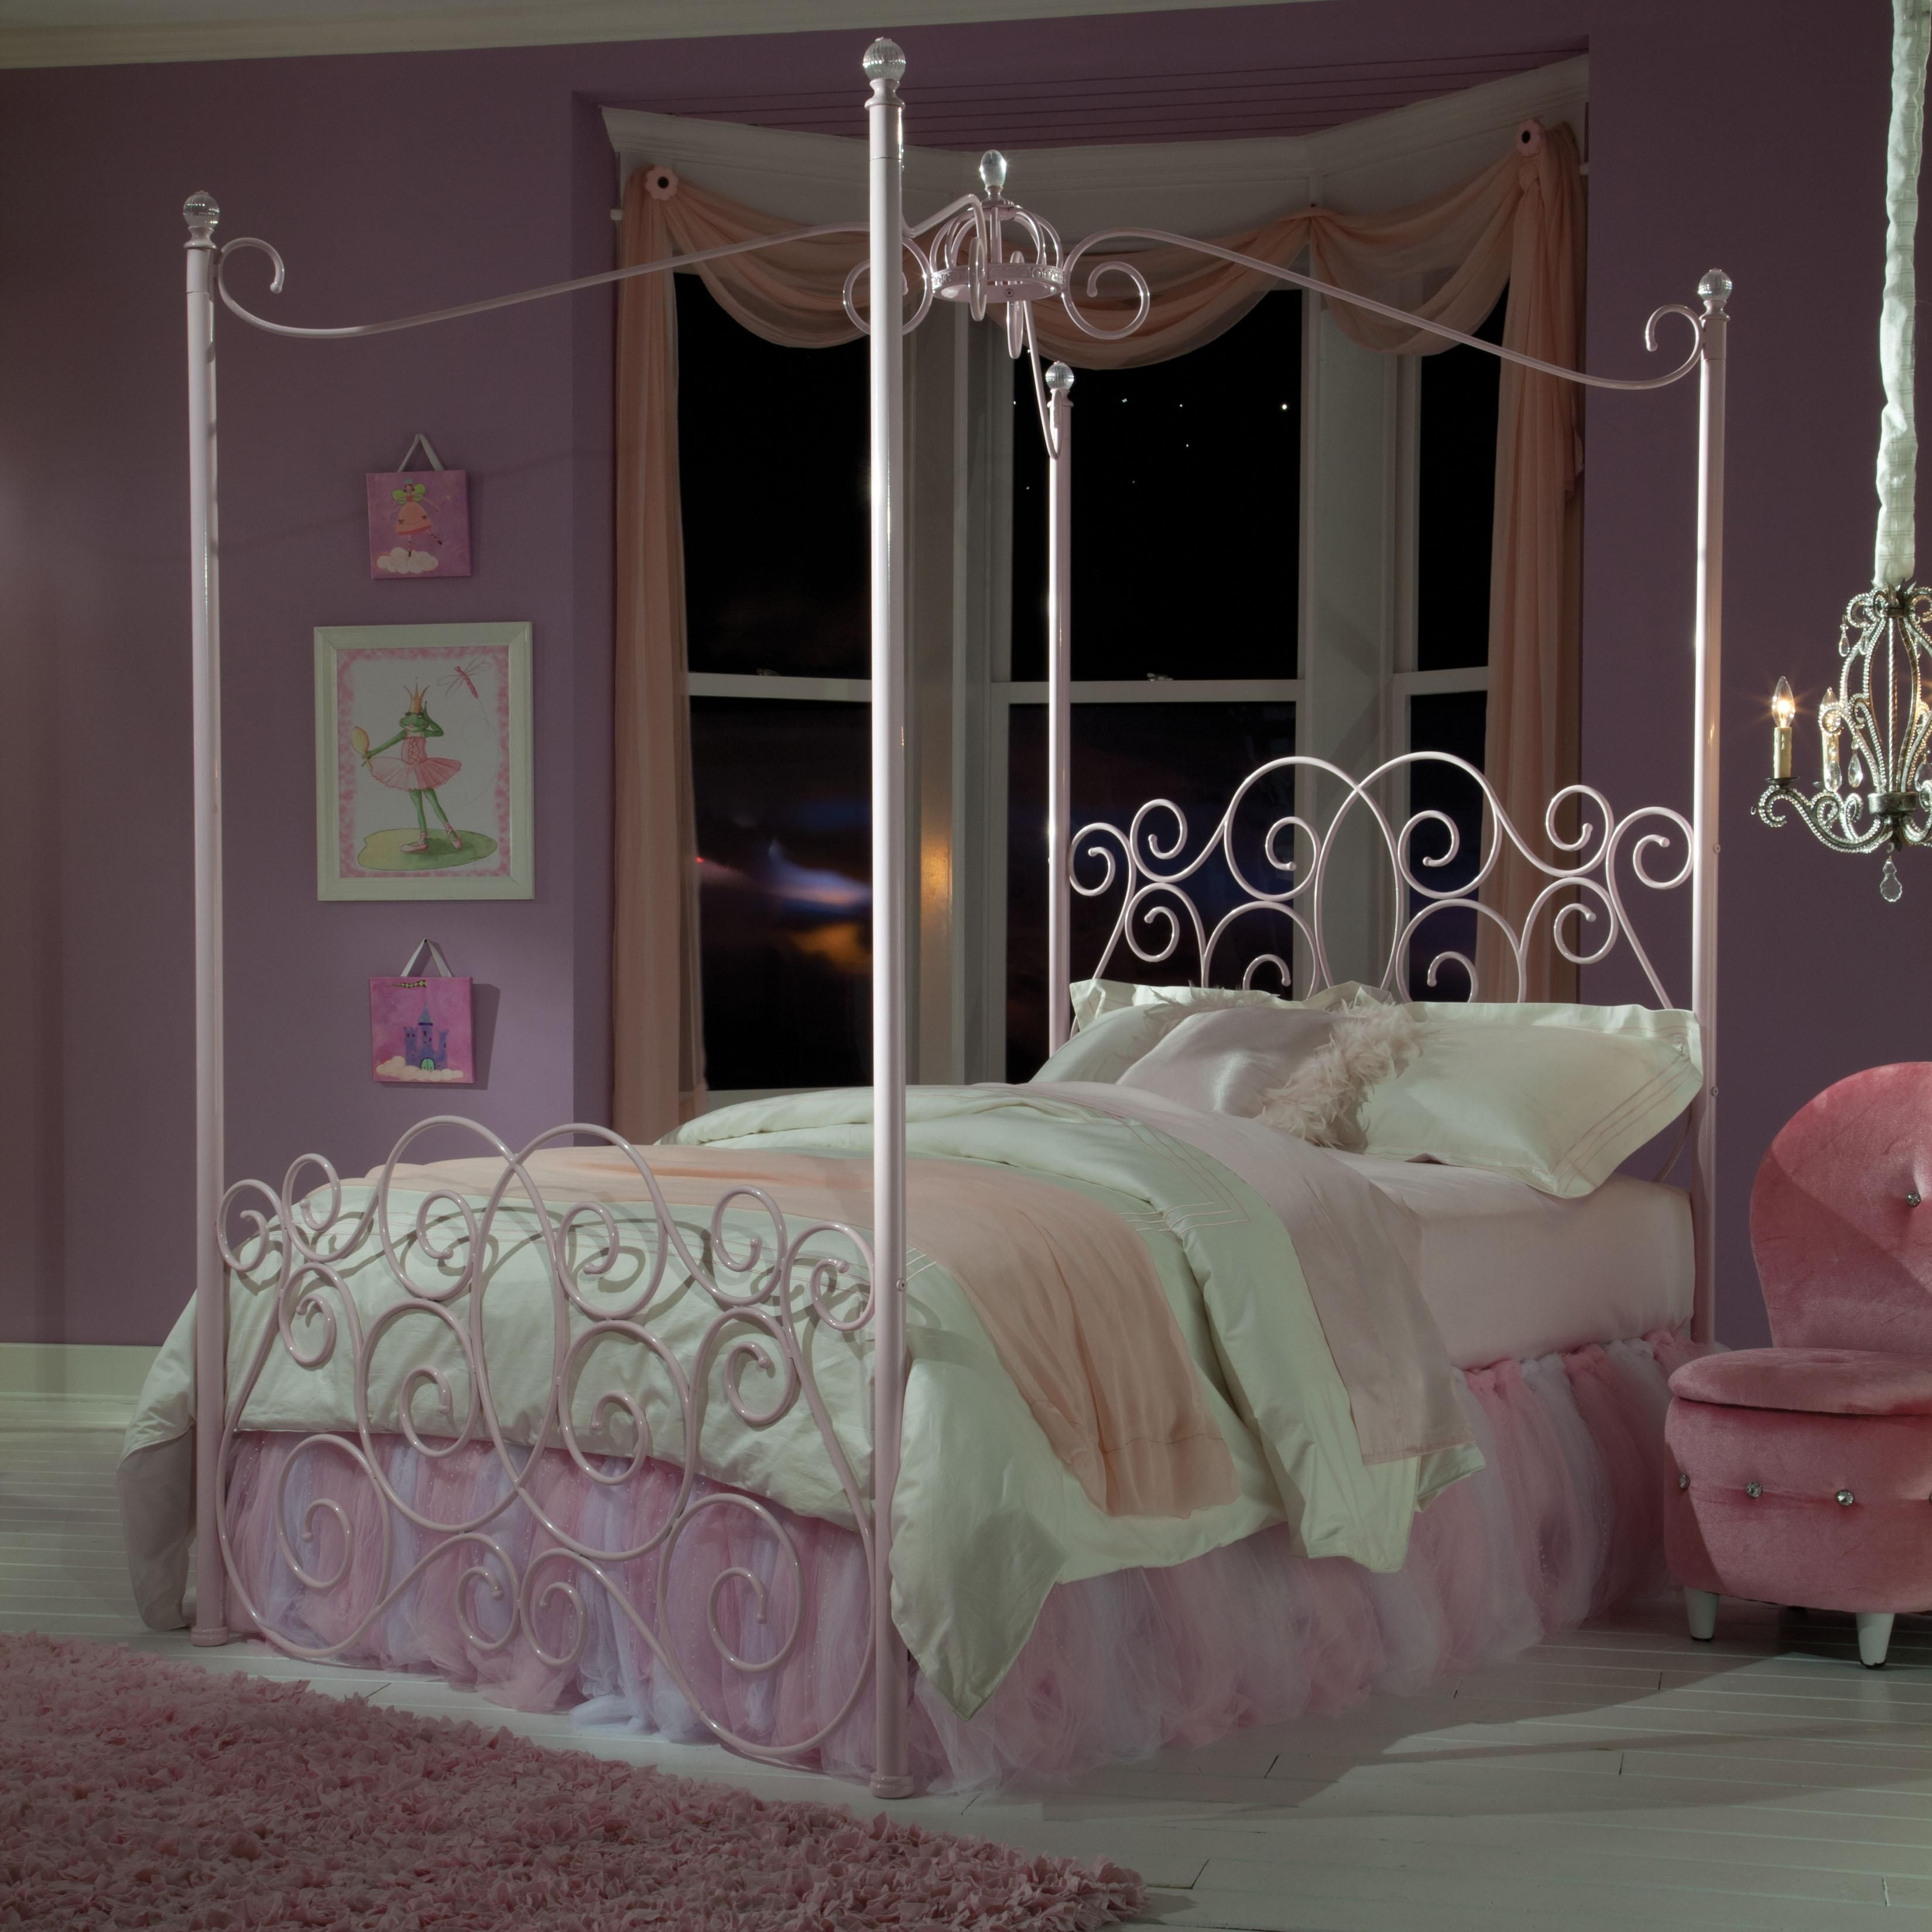 4 Poster Princess Bed Canopy Curtains Canopy Bed Frame Canopy Bed Canopy